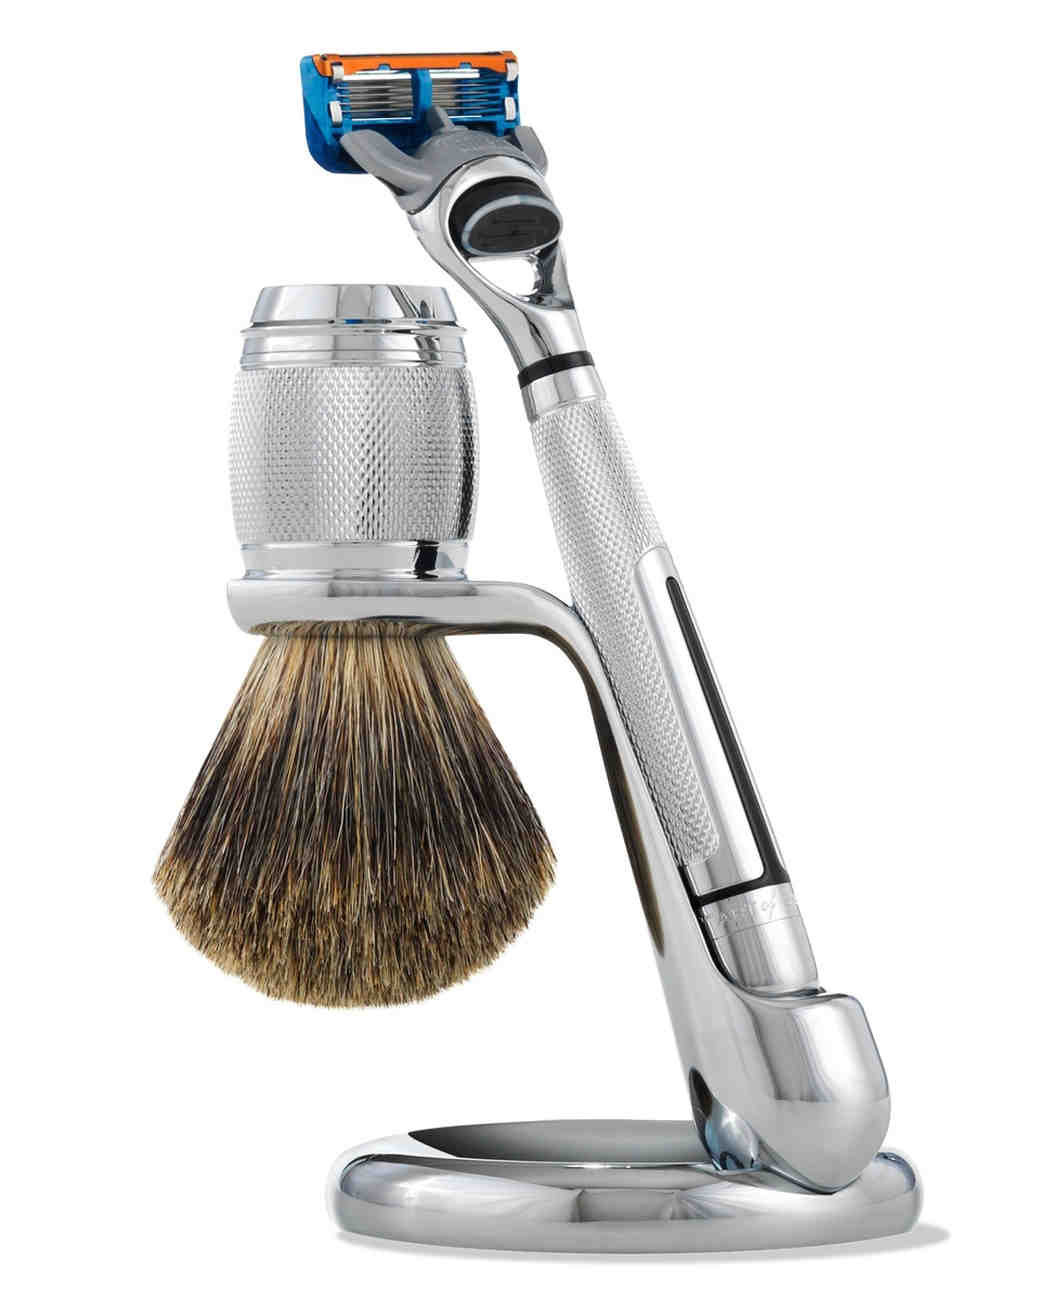 12 Best Grooming Products For The Well Groomed Groom